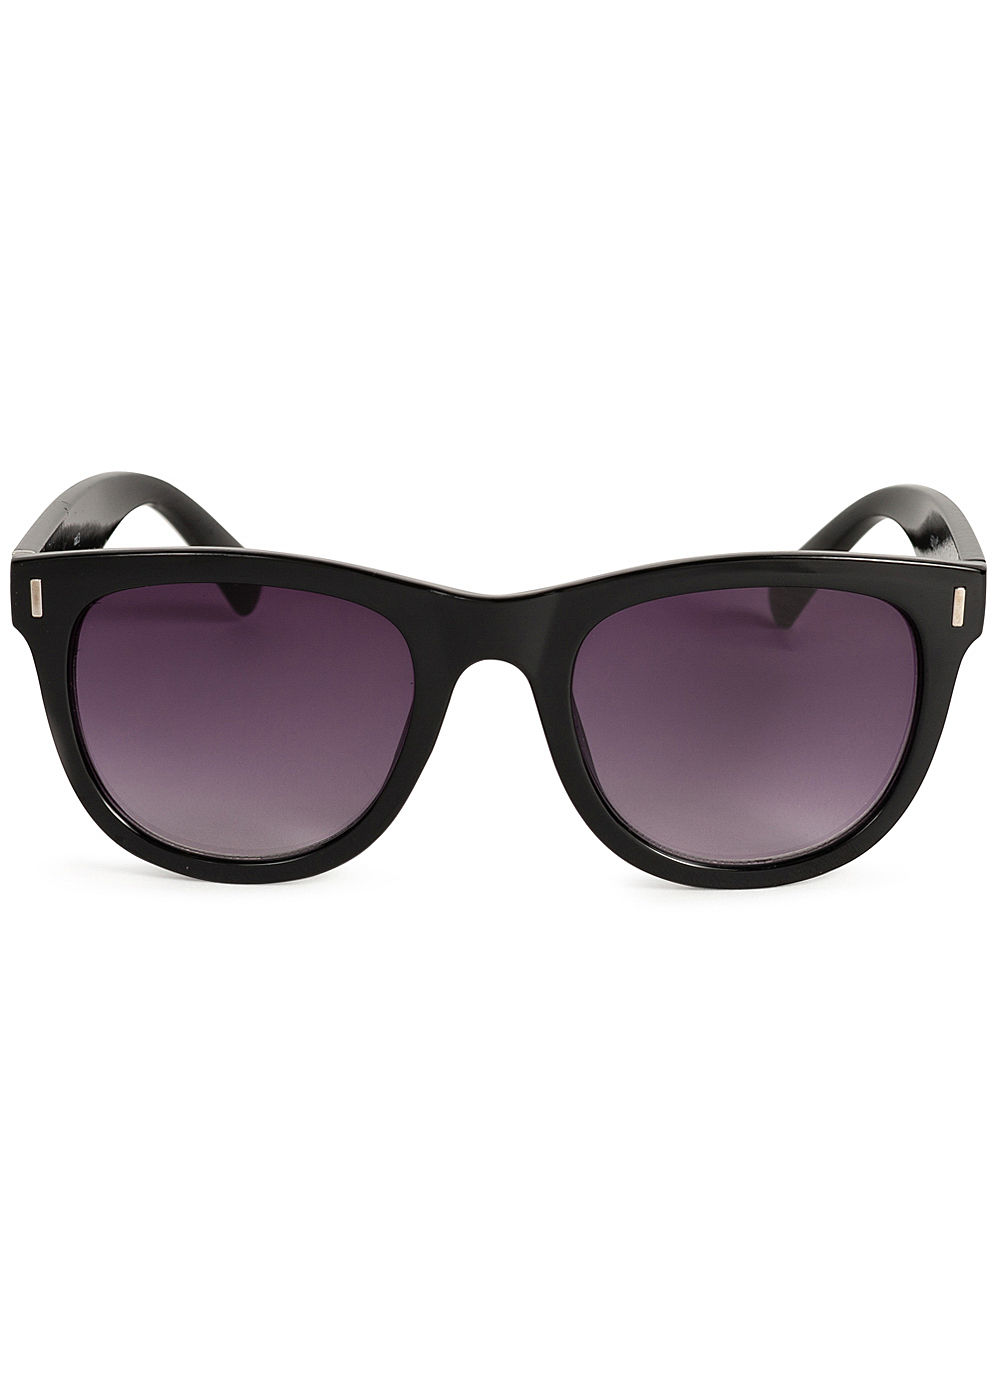 Hailys Damen kleine Cat Eye Sonnenbrille UV-400 Cat.3 schwarz - Art.-Nr.: 20083935-OS-BK